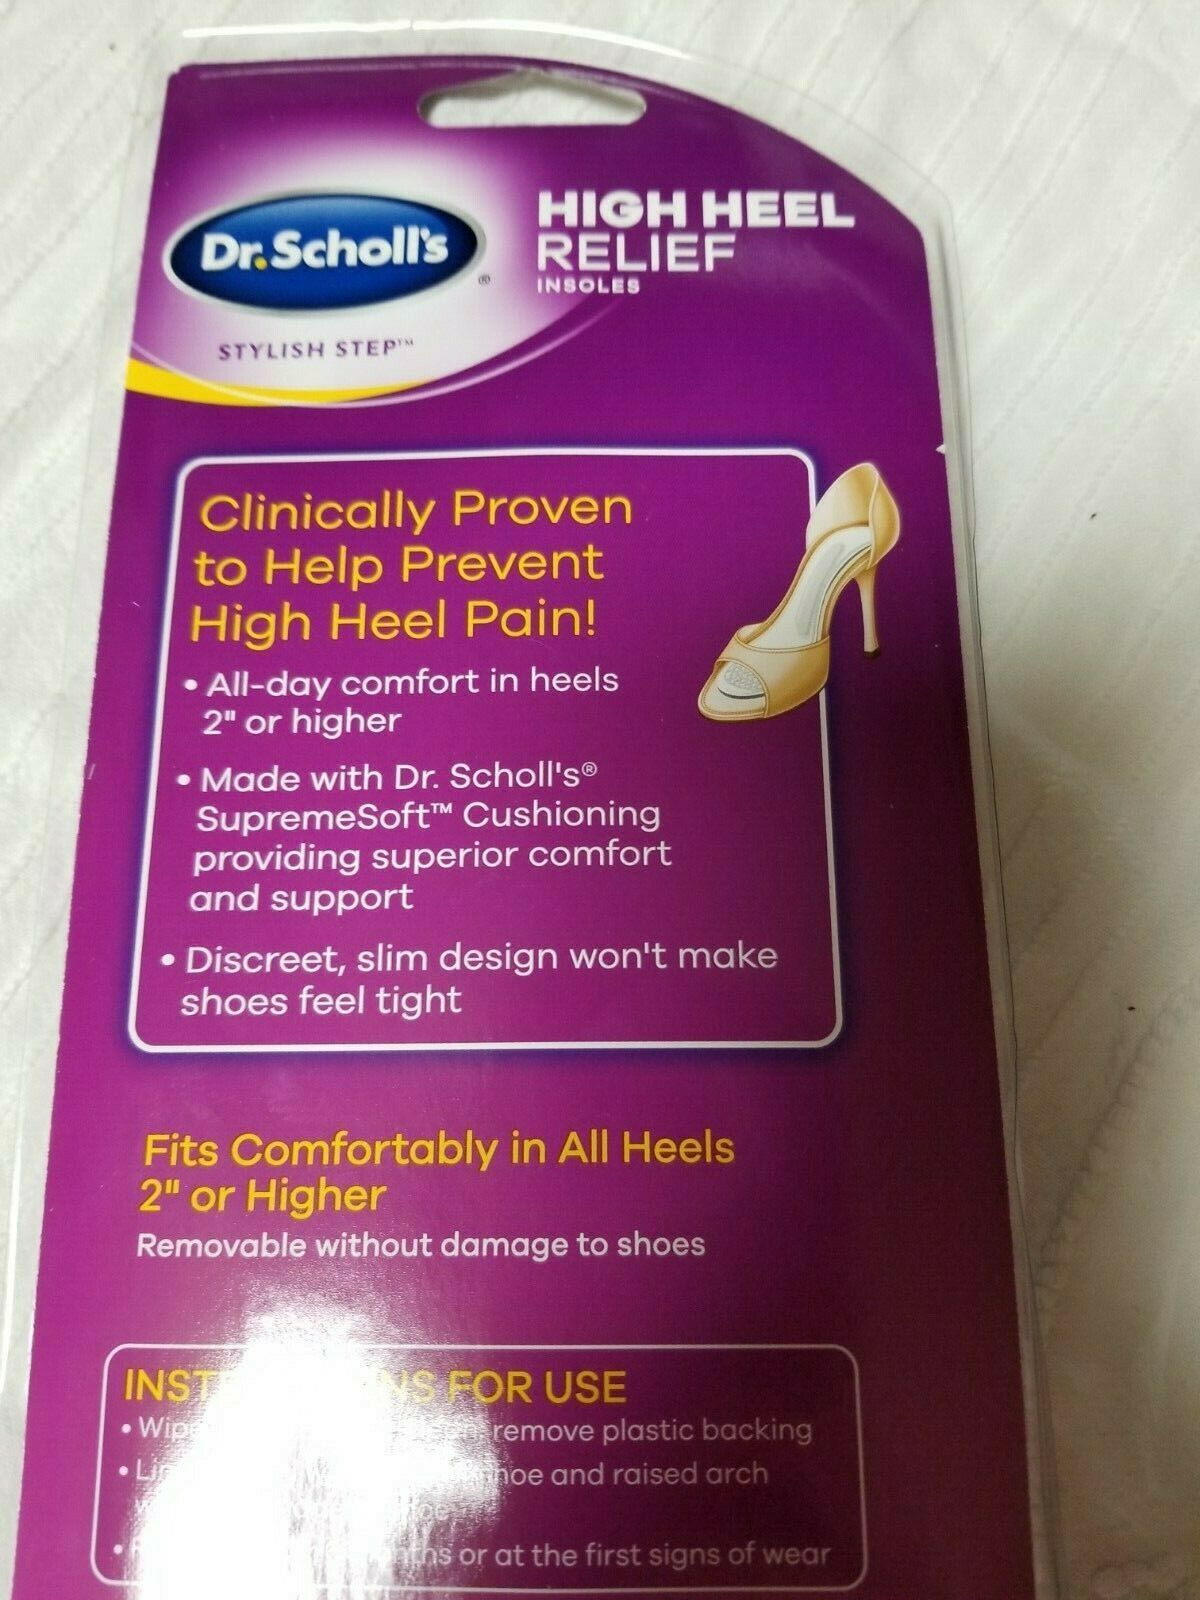 Dr. Scholls Stylish Step High Heel Relief and similar items